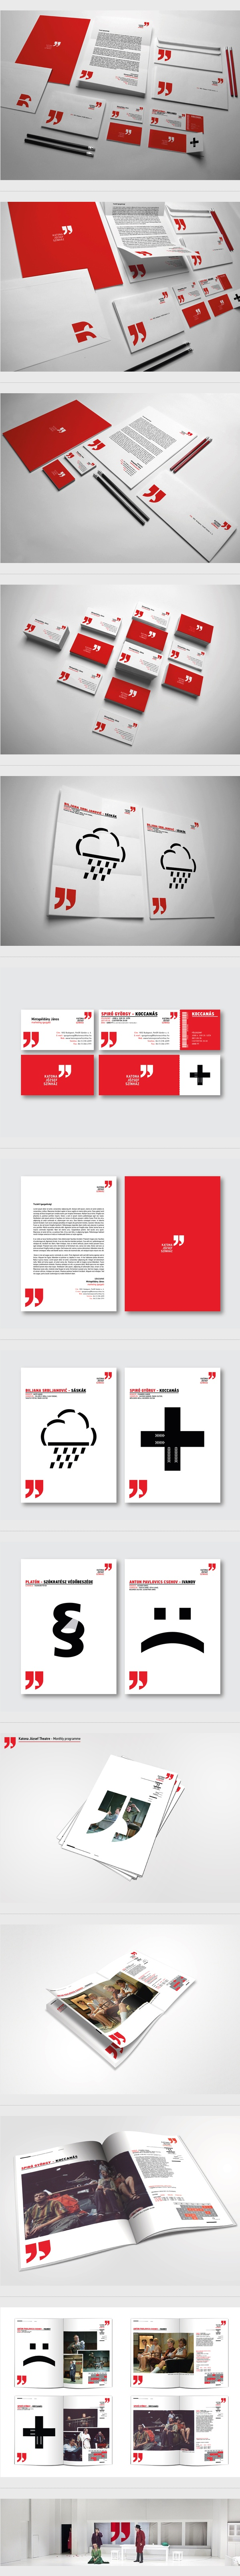 I really love the red and the quotes icon. It's also very uncluttered. Love good, clean design. Katona József Theatre on Behance #branding